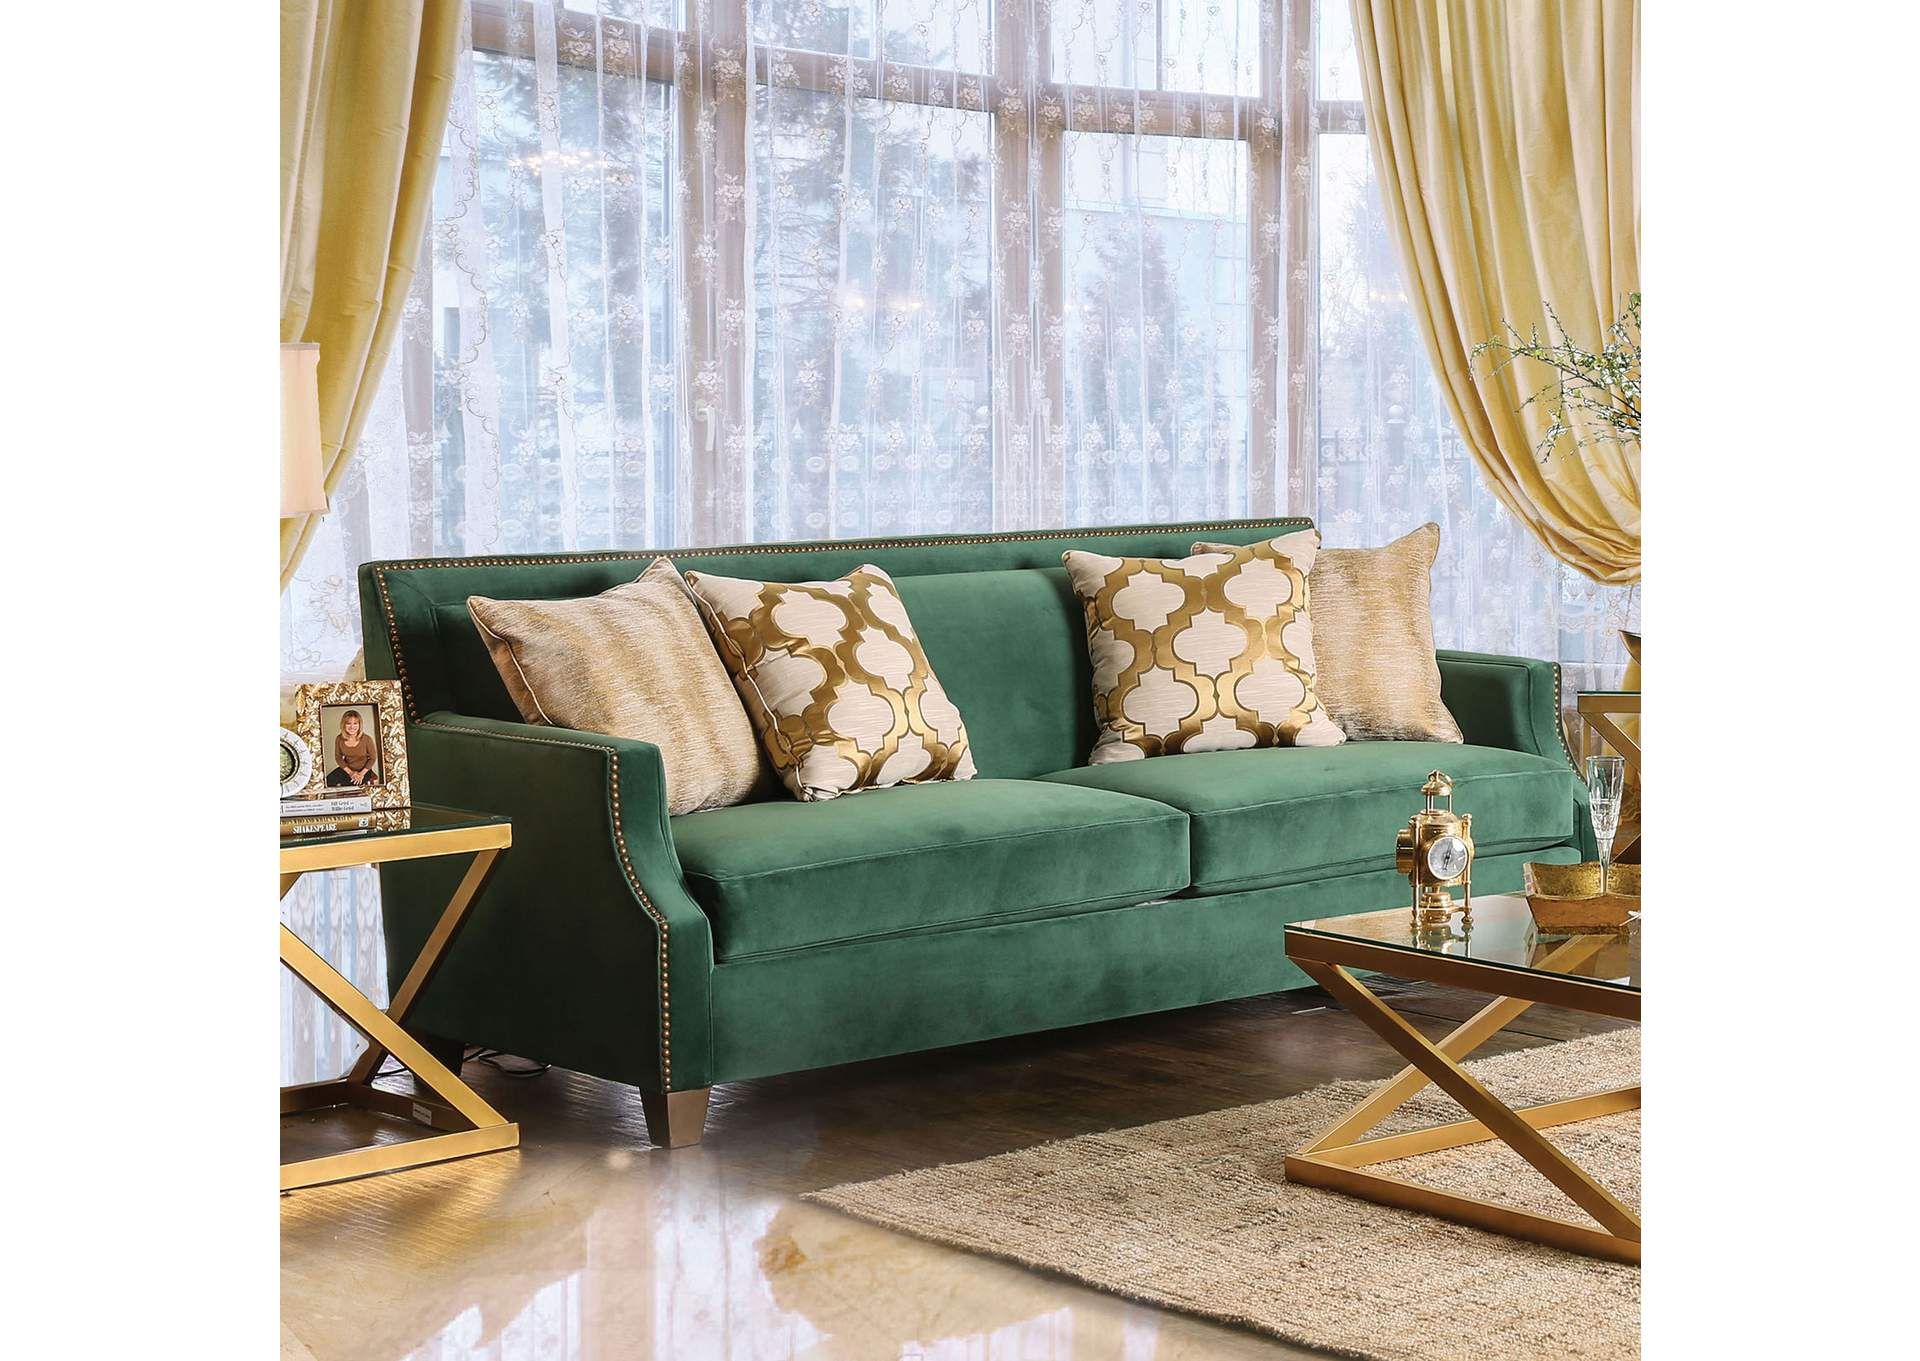 Fantastic Foothills Family Furniture Verdante Emerald Green Sofa W Pillows Pdpeps Interior Chair Design Pdpepsorg